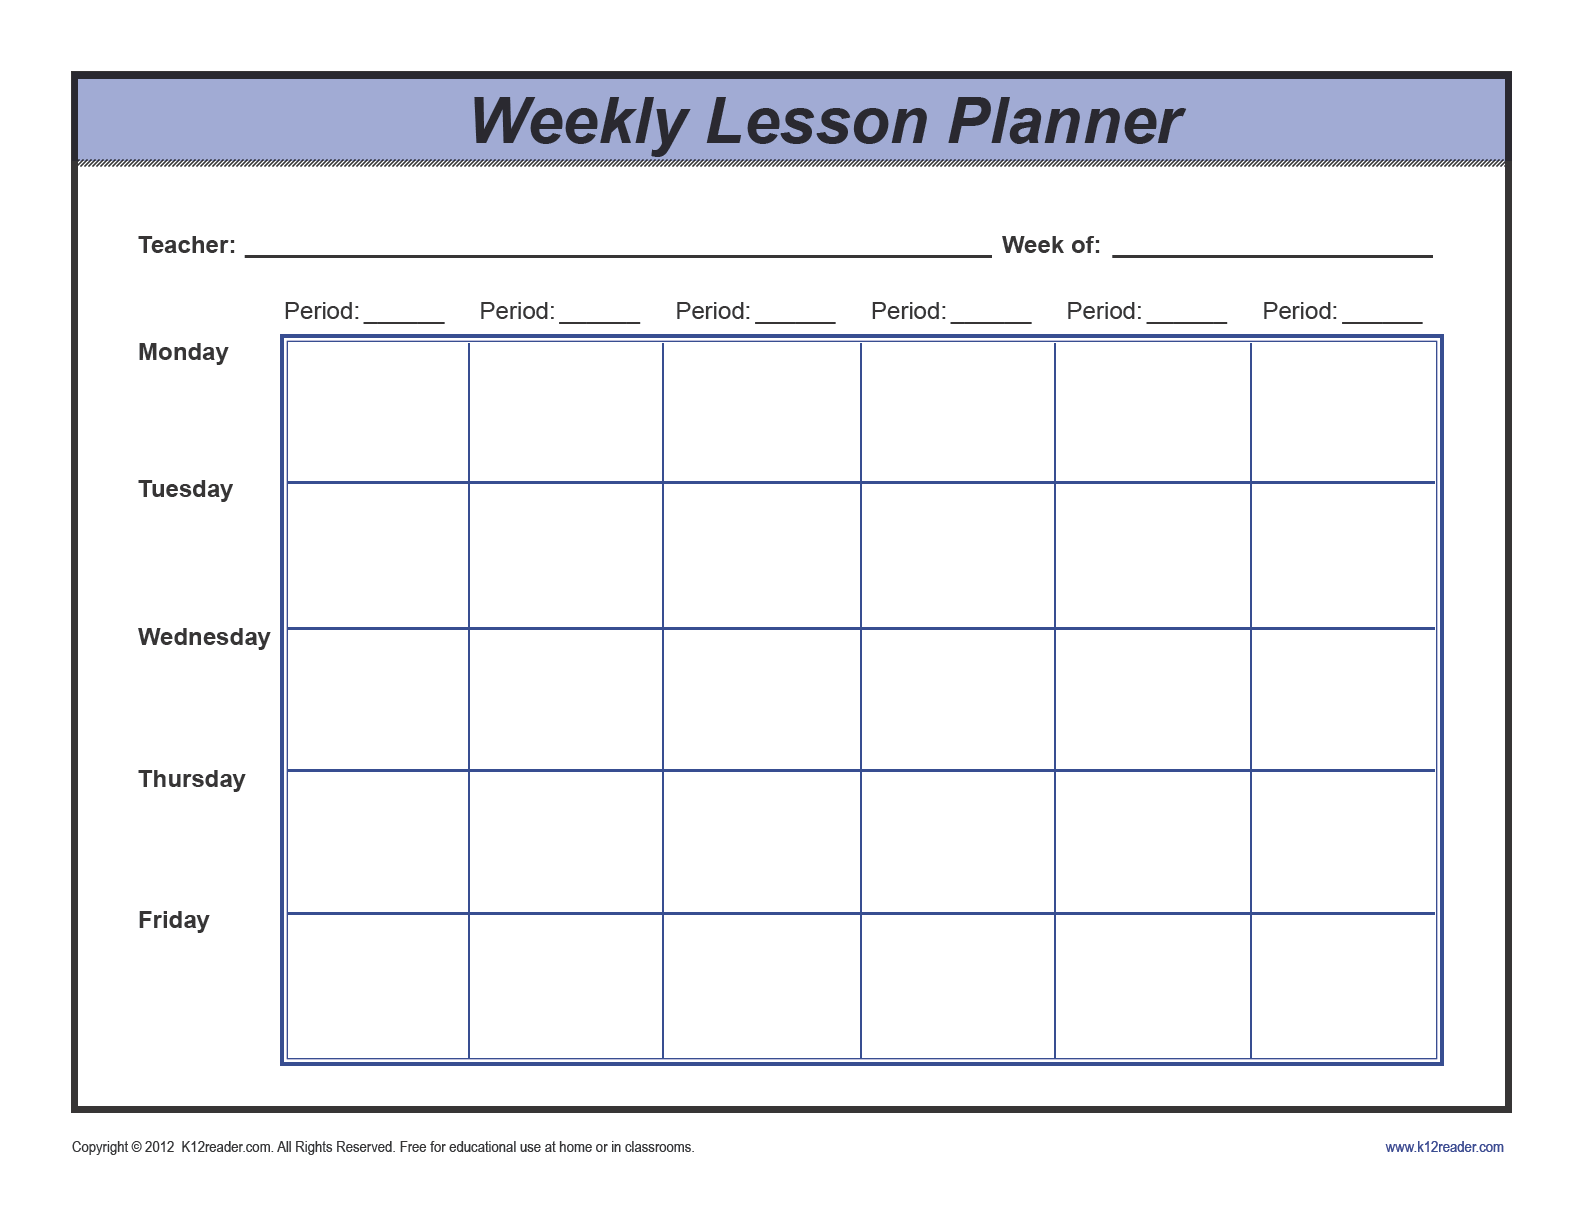 Superb image regarding weekly plans template